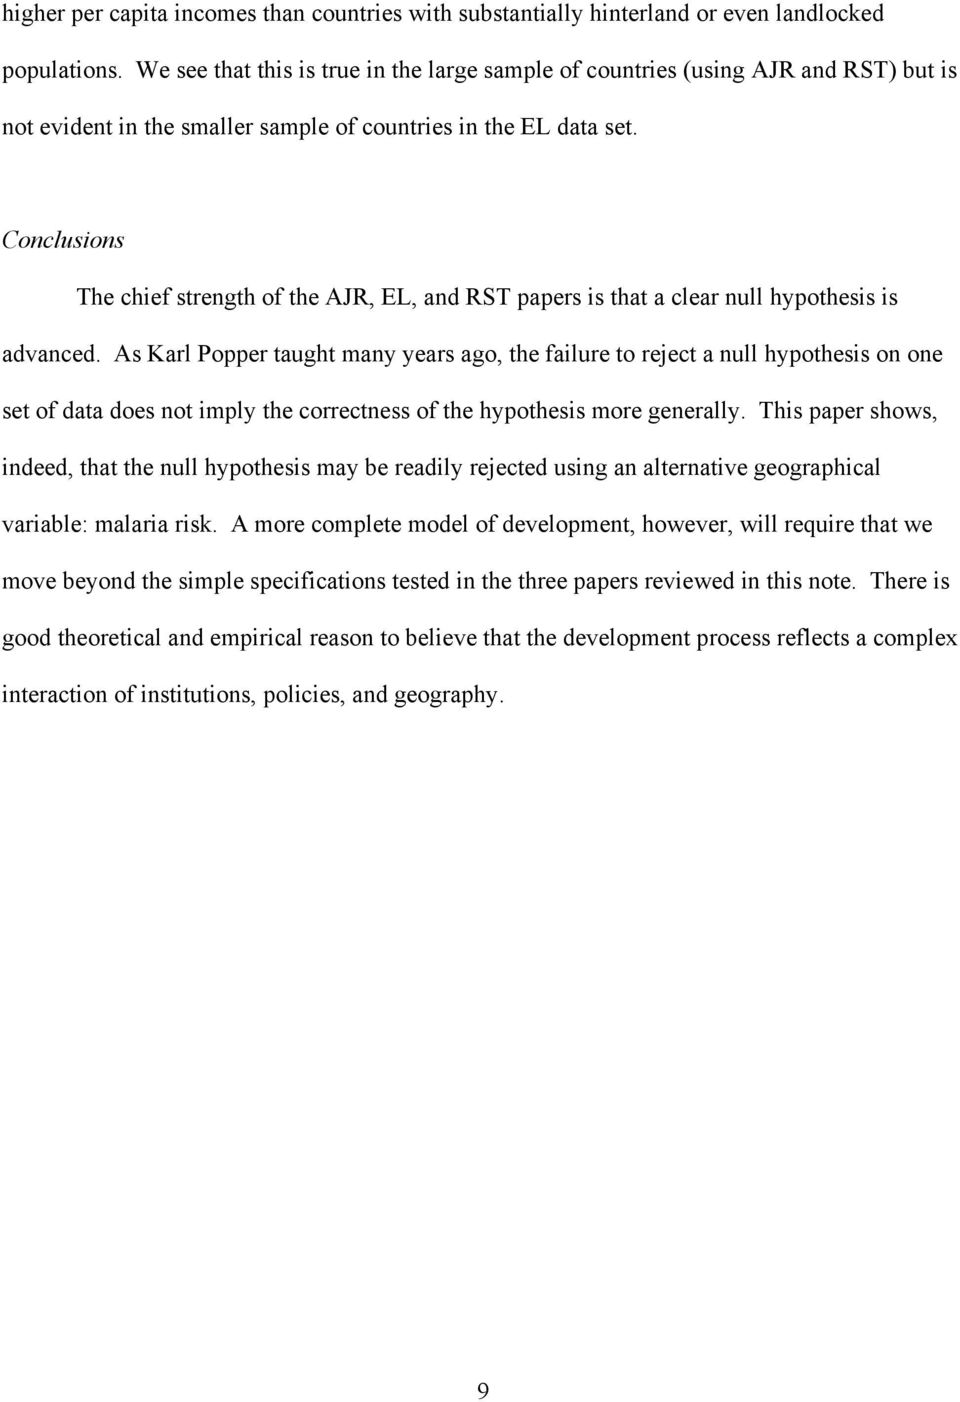 Conclusions The chief strength of the AJR, EL, and RST papers is that a clear null hypothesis is advanced.